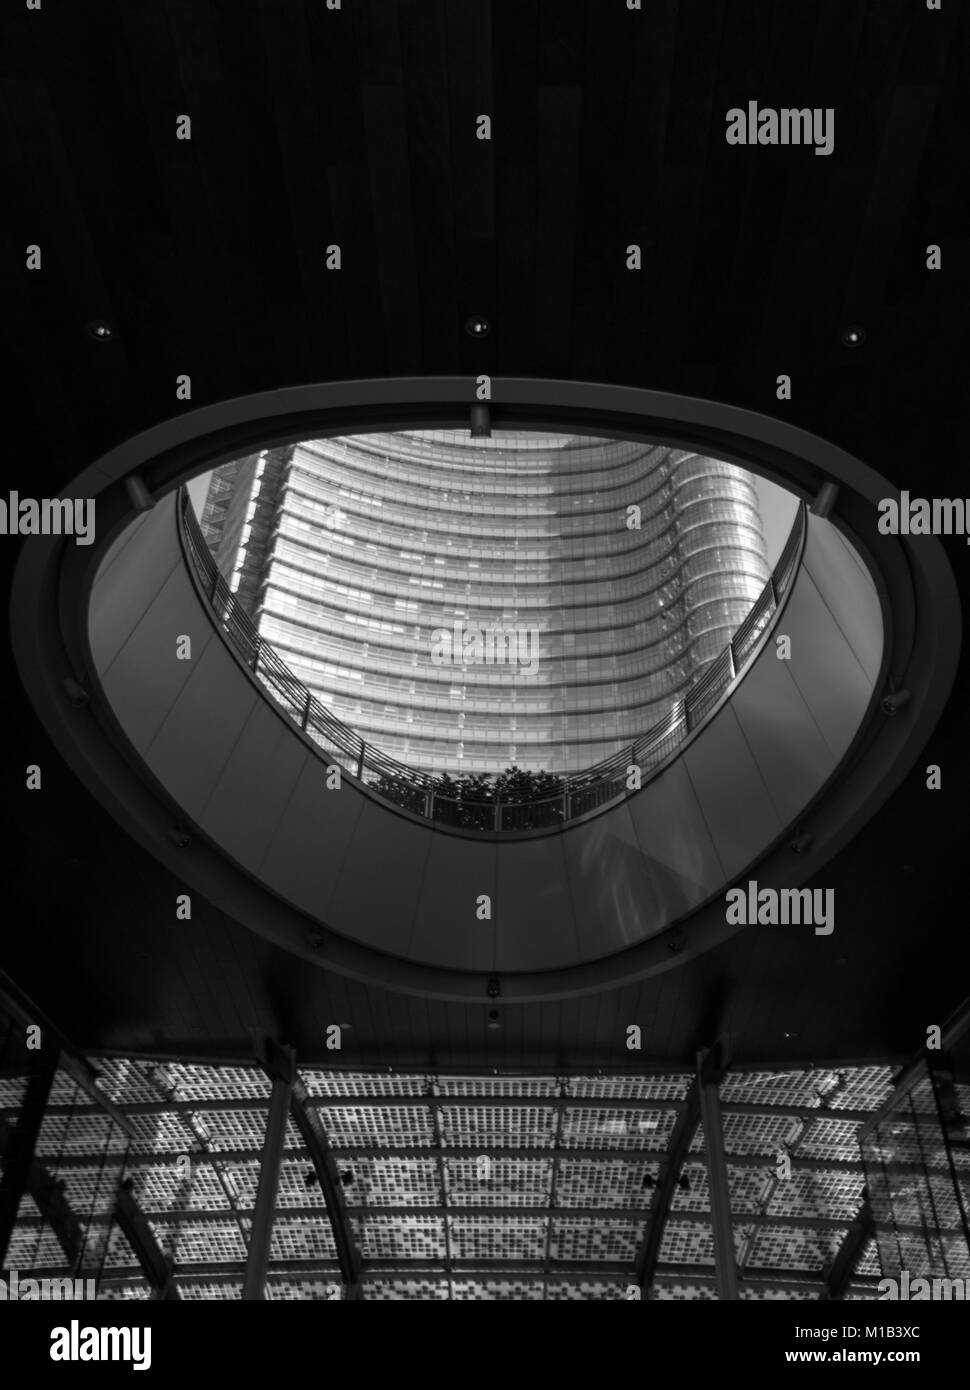 Inside the uni credit complex in porta Garibaldi, Milan. Piazza Gae Aulenti - Stock Image